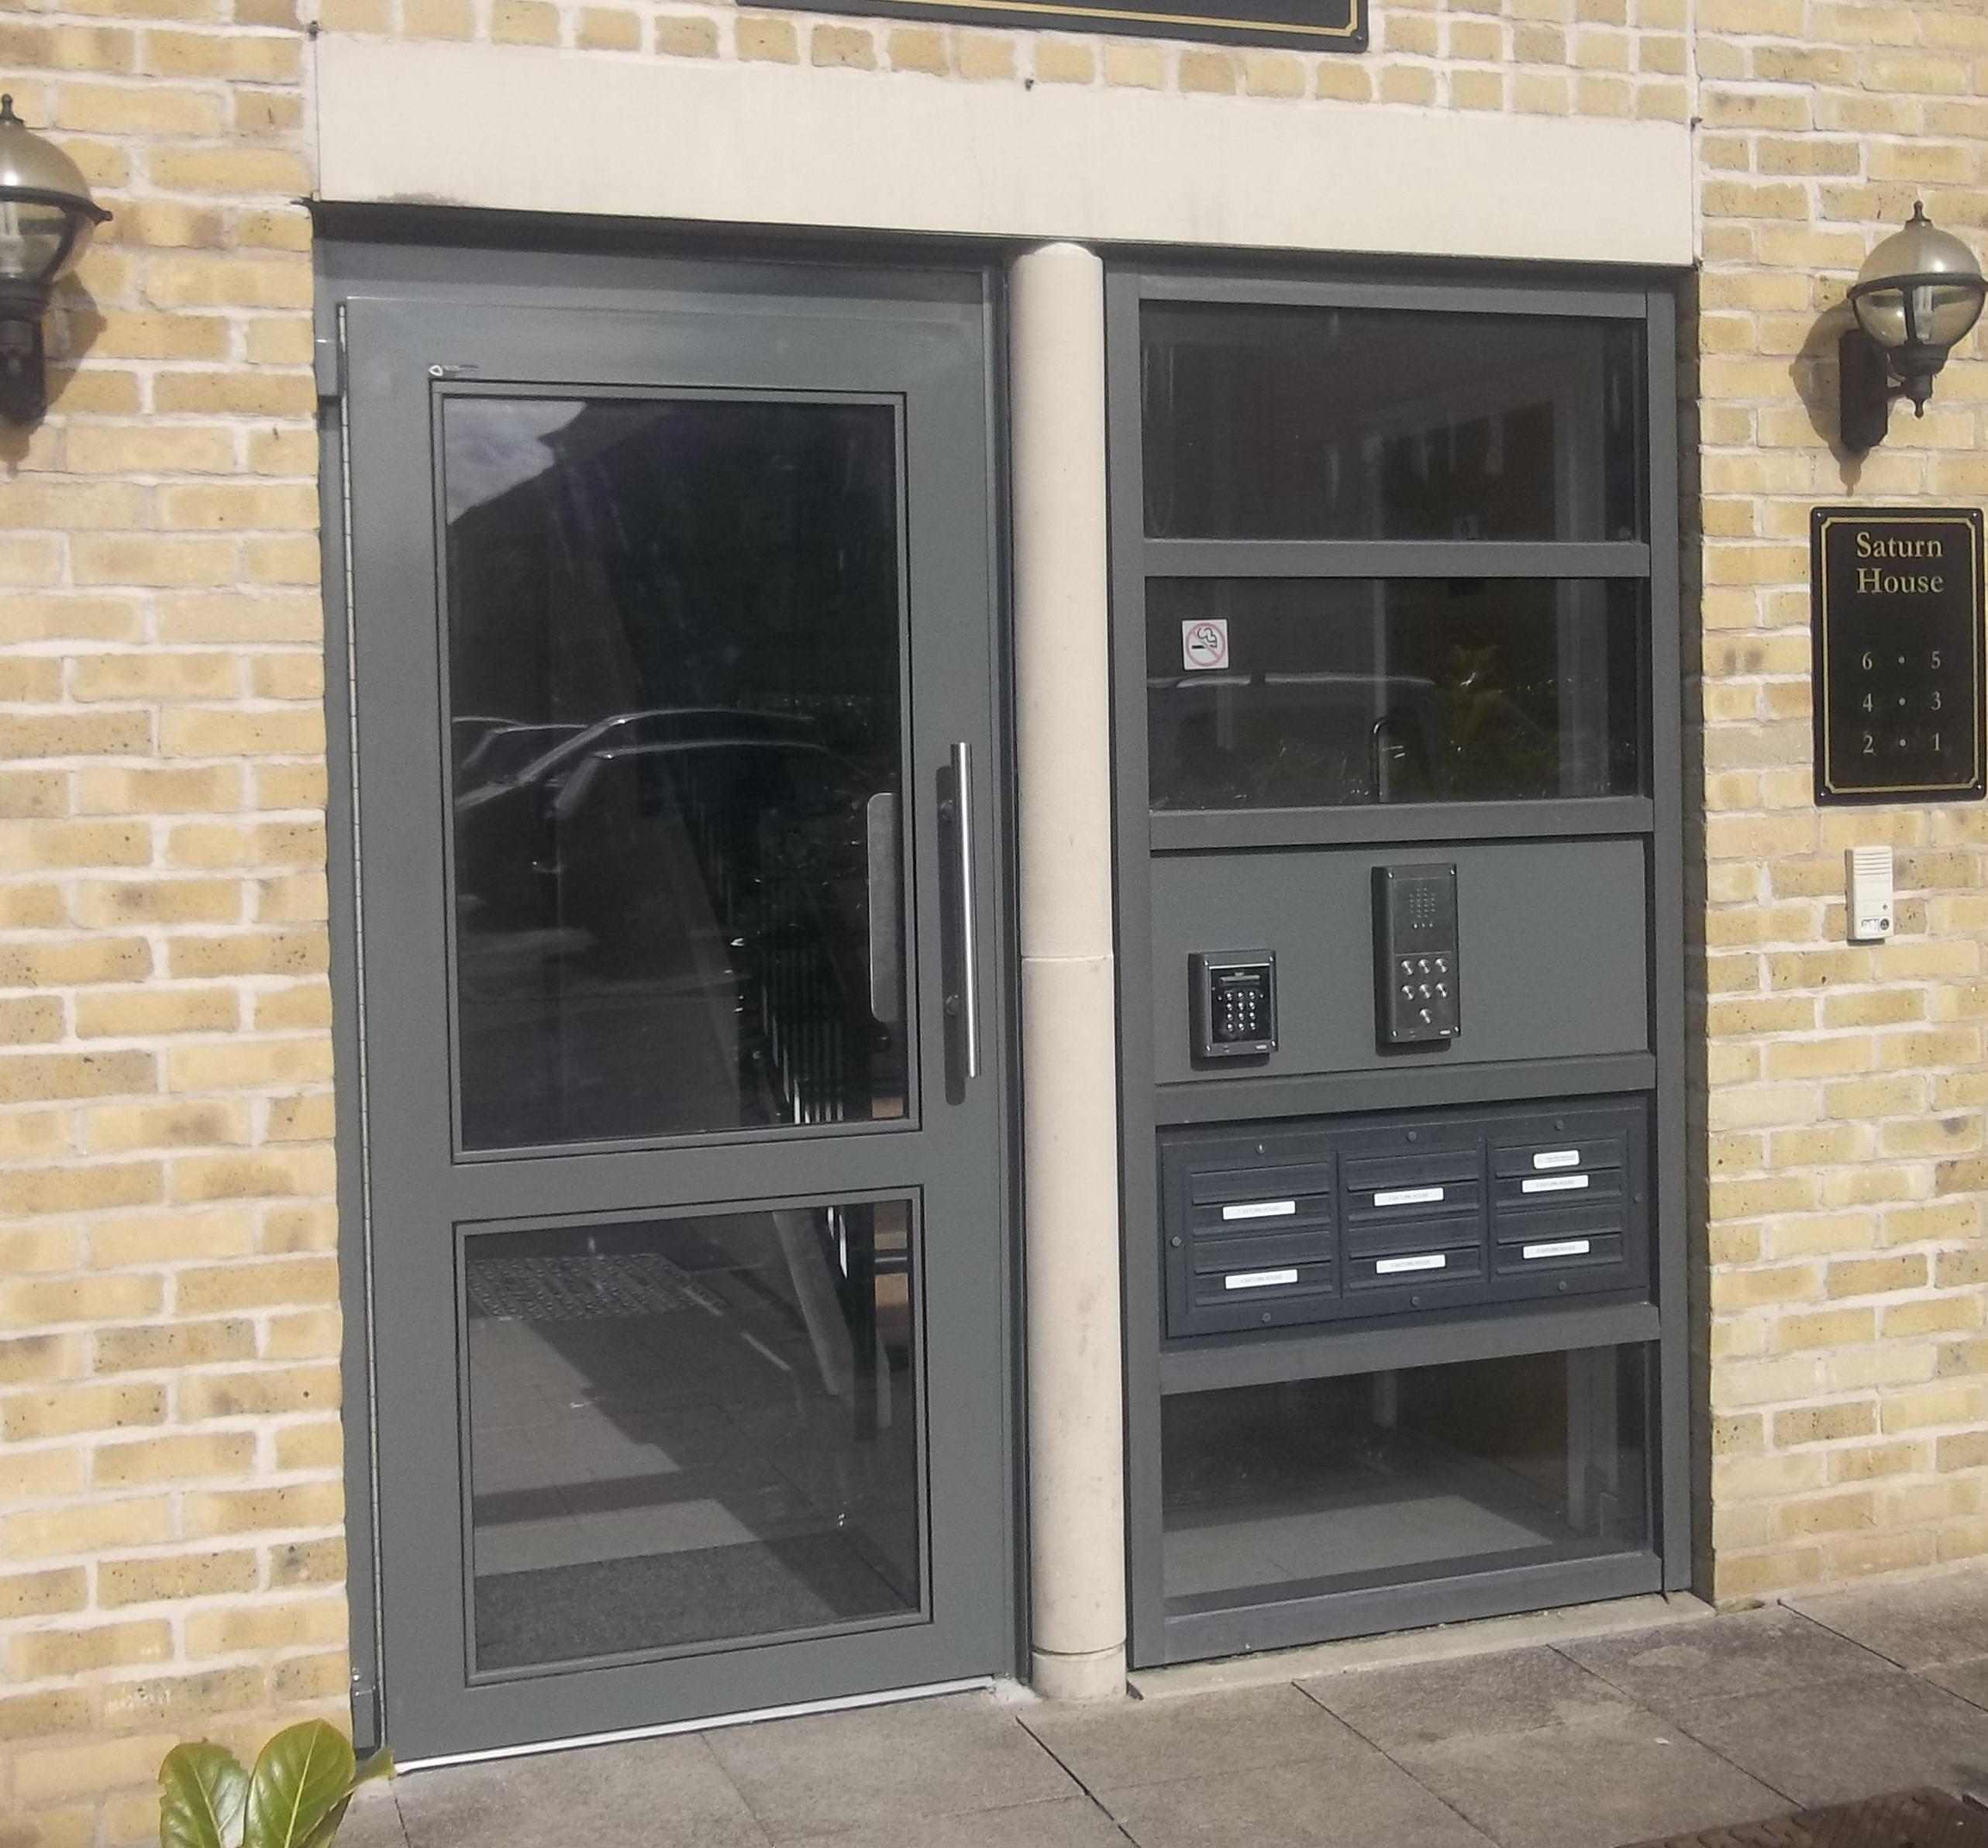 Neos Protect Ltd Specialise In The Design Manufacture And